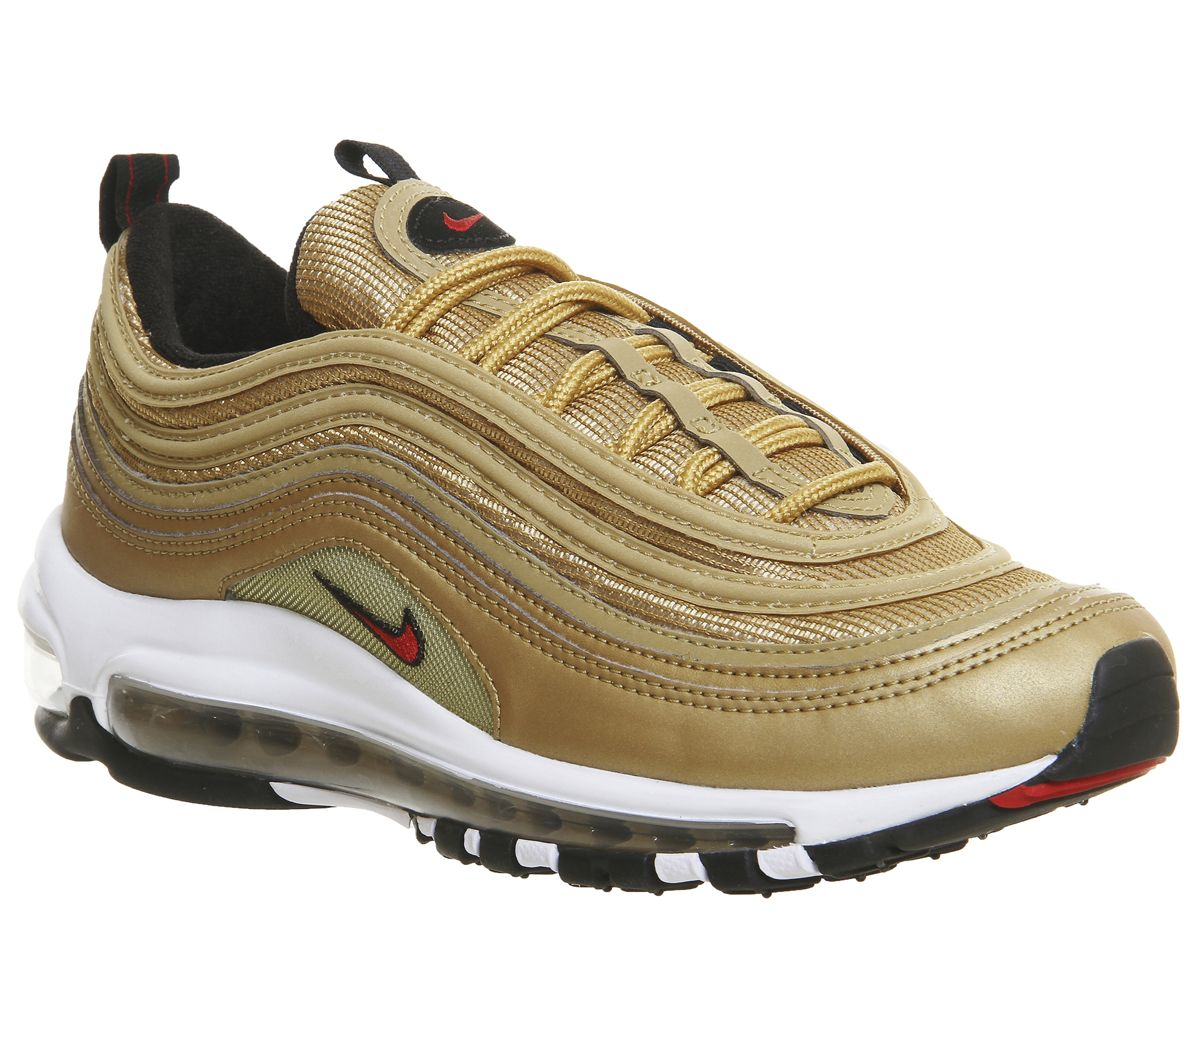 newest 394e1 e4b1e Nike Air Max 97 Trainers Mtlc Gld Var Red - Hers trainers